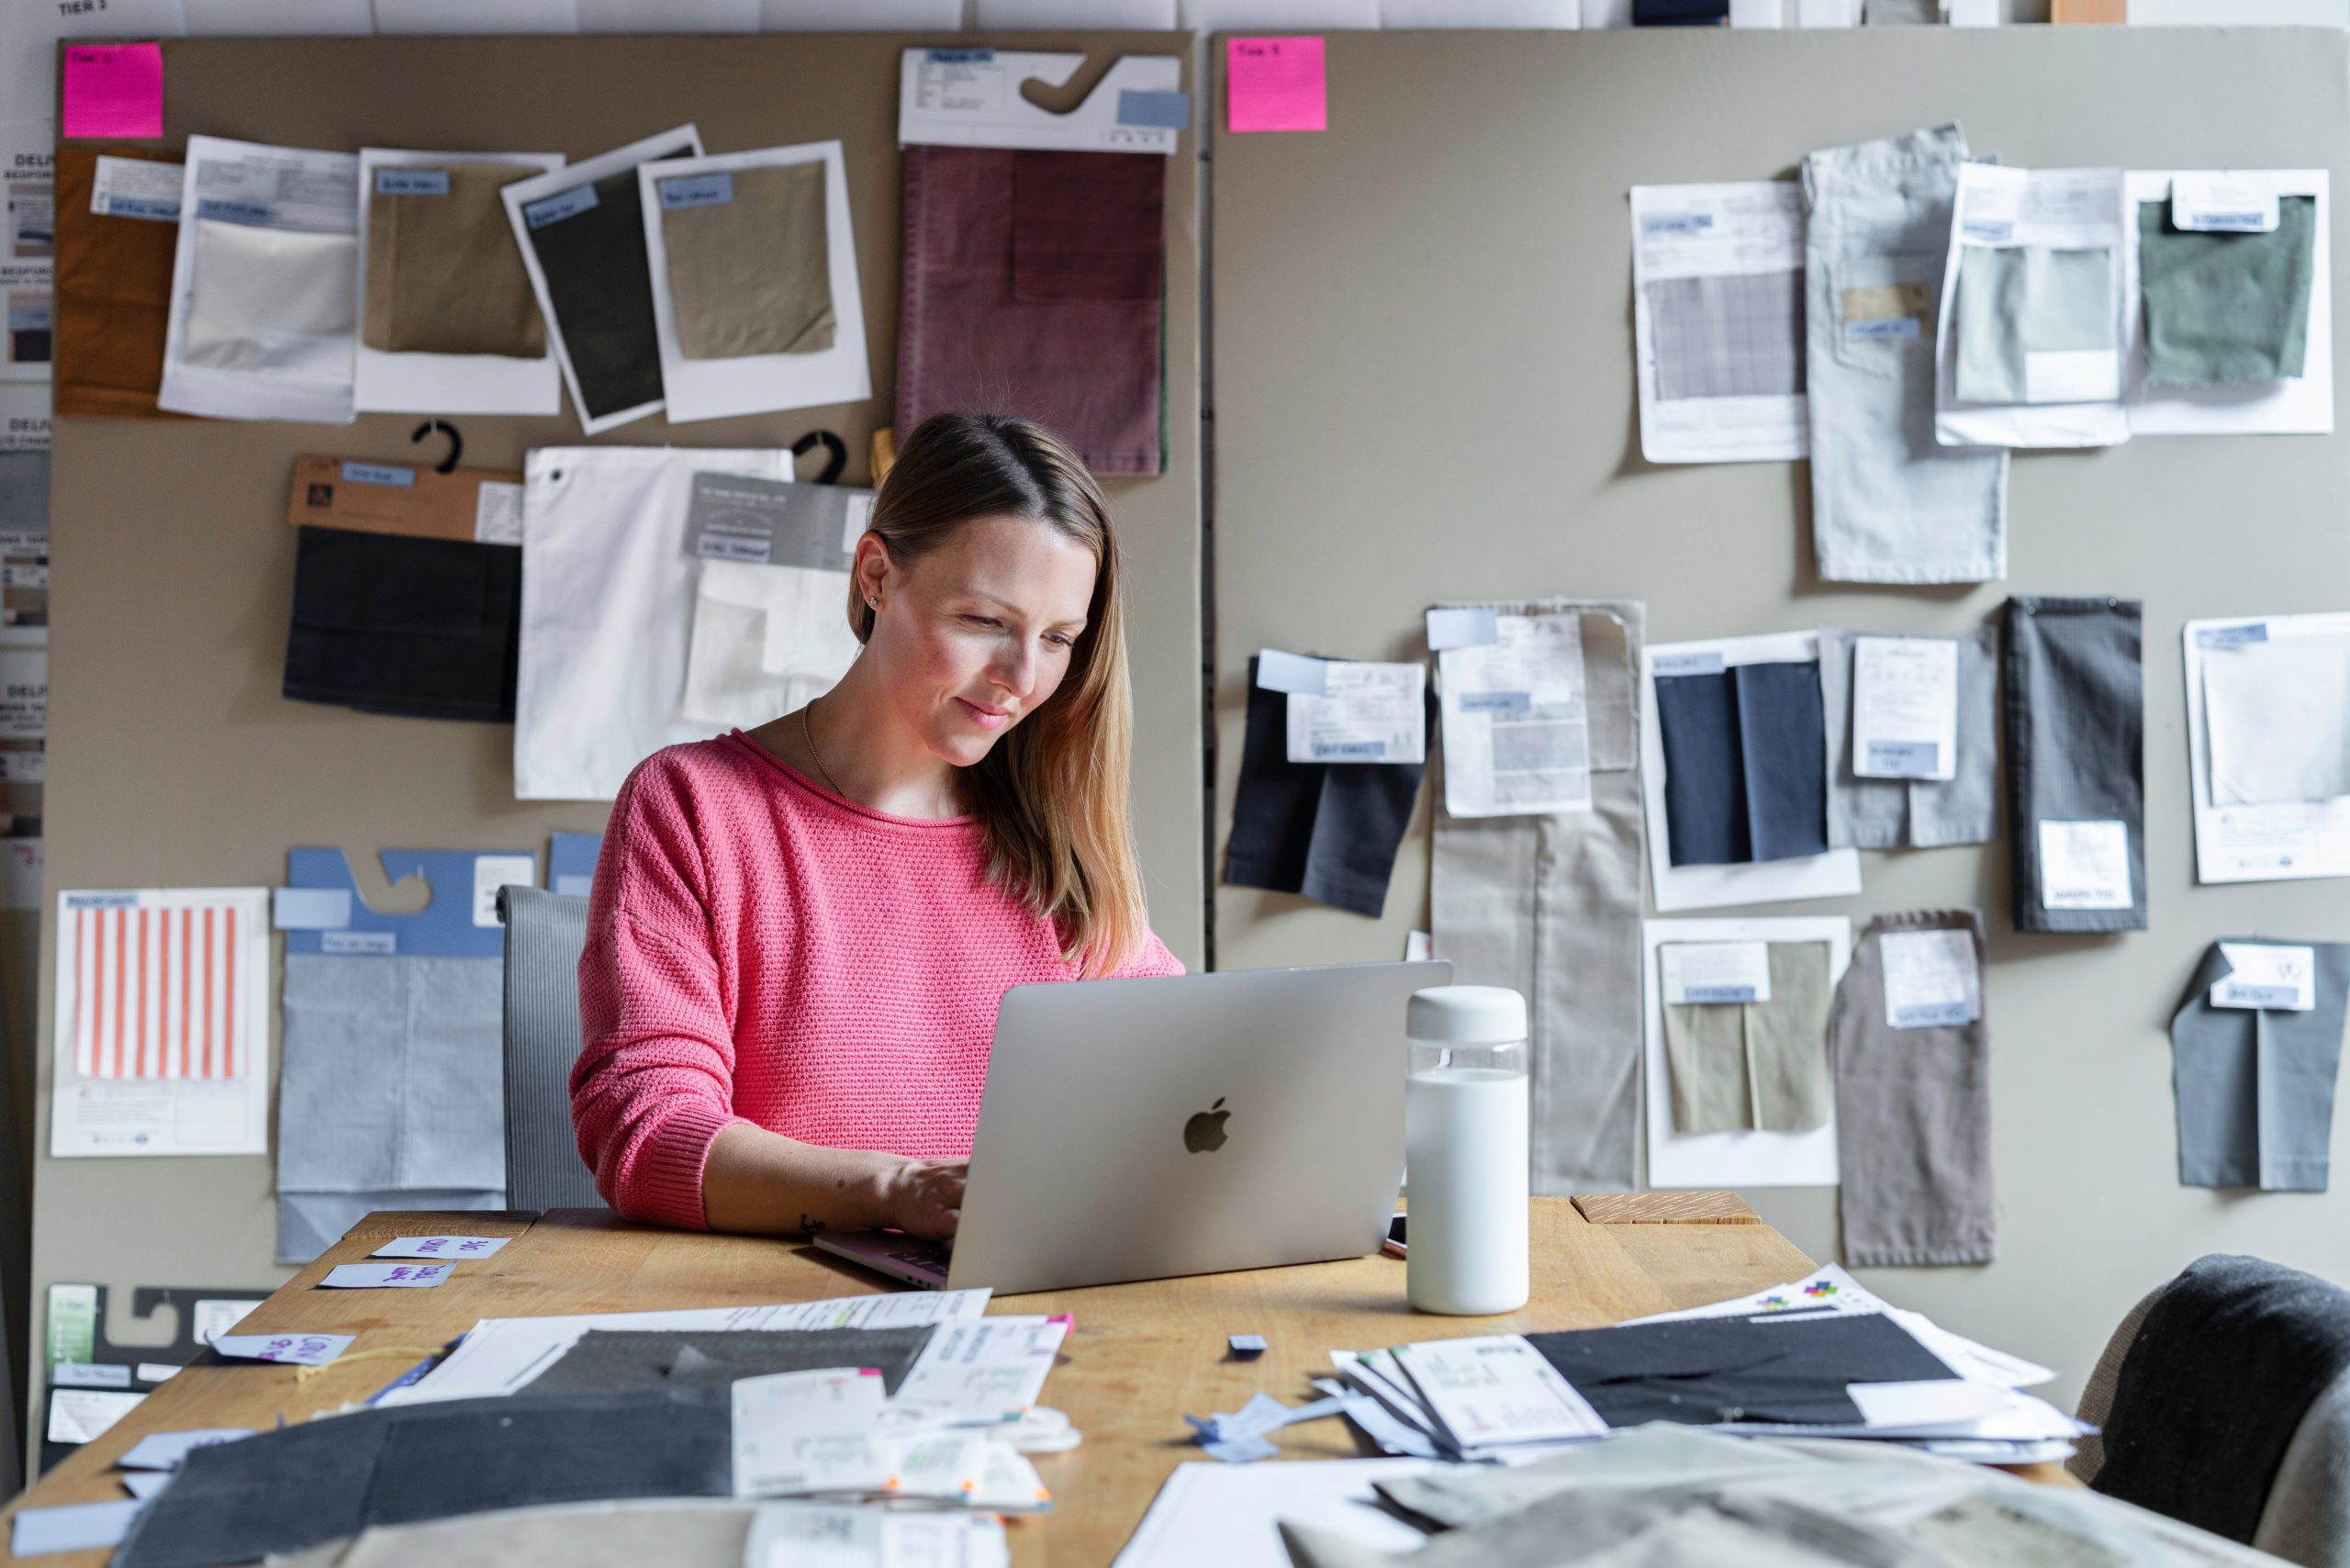 A businesswoman working in an office